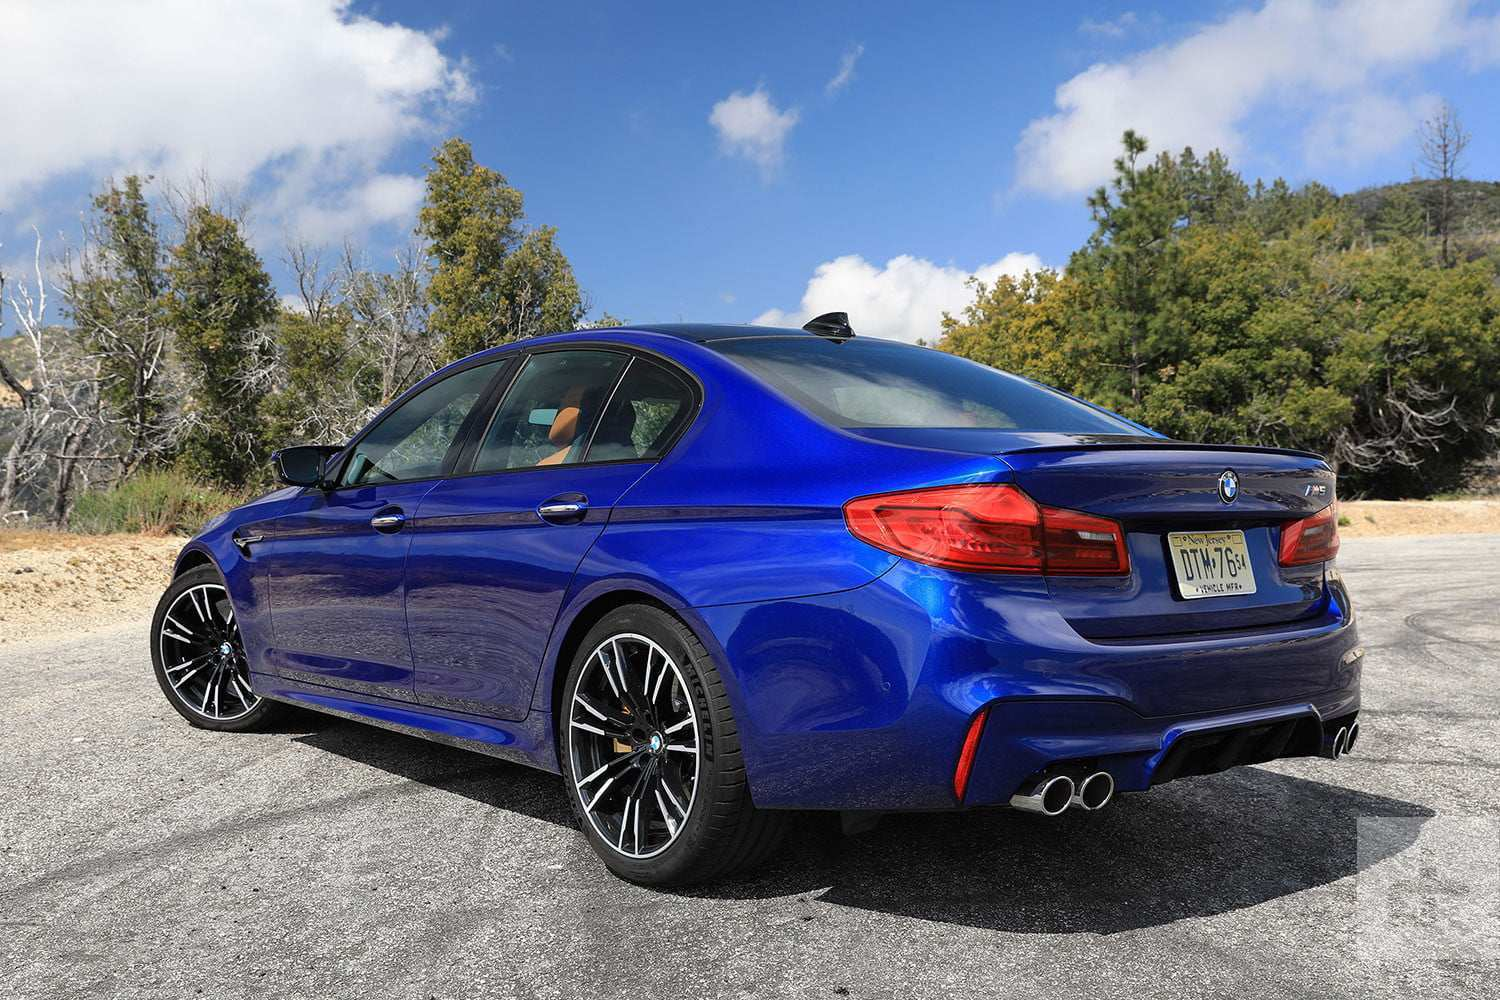 73 Gallery of 2020 BMW M5 Specs and Review with 2020 BMW M5